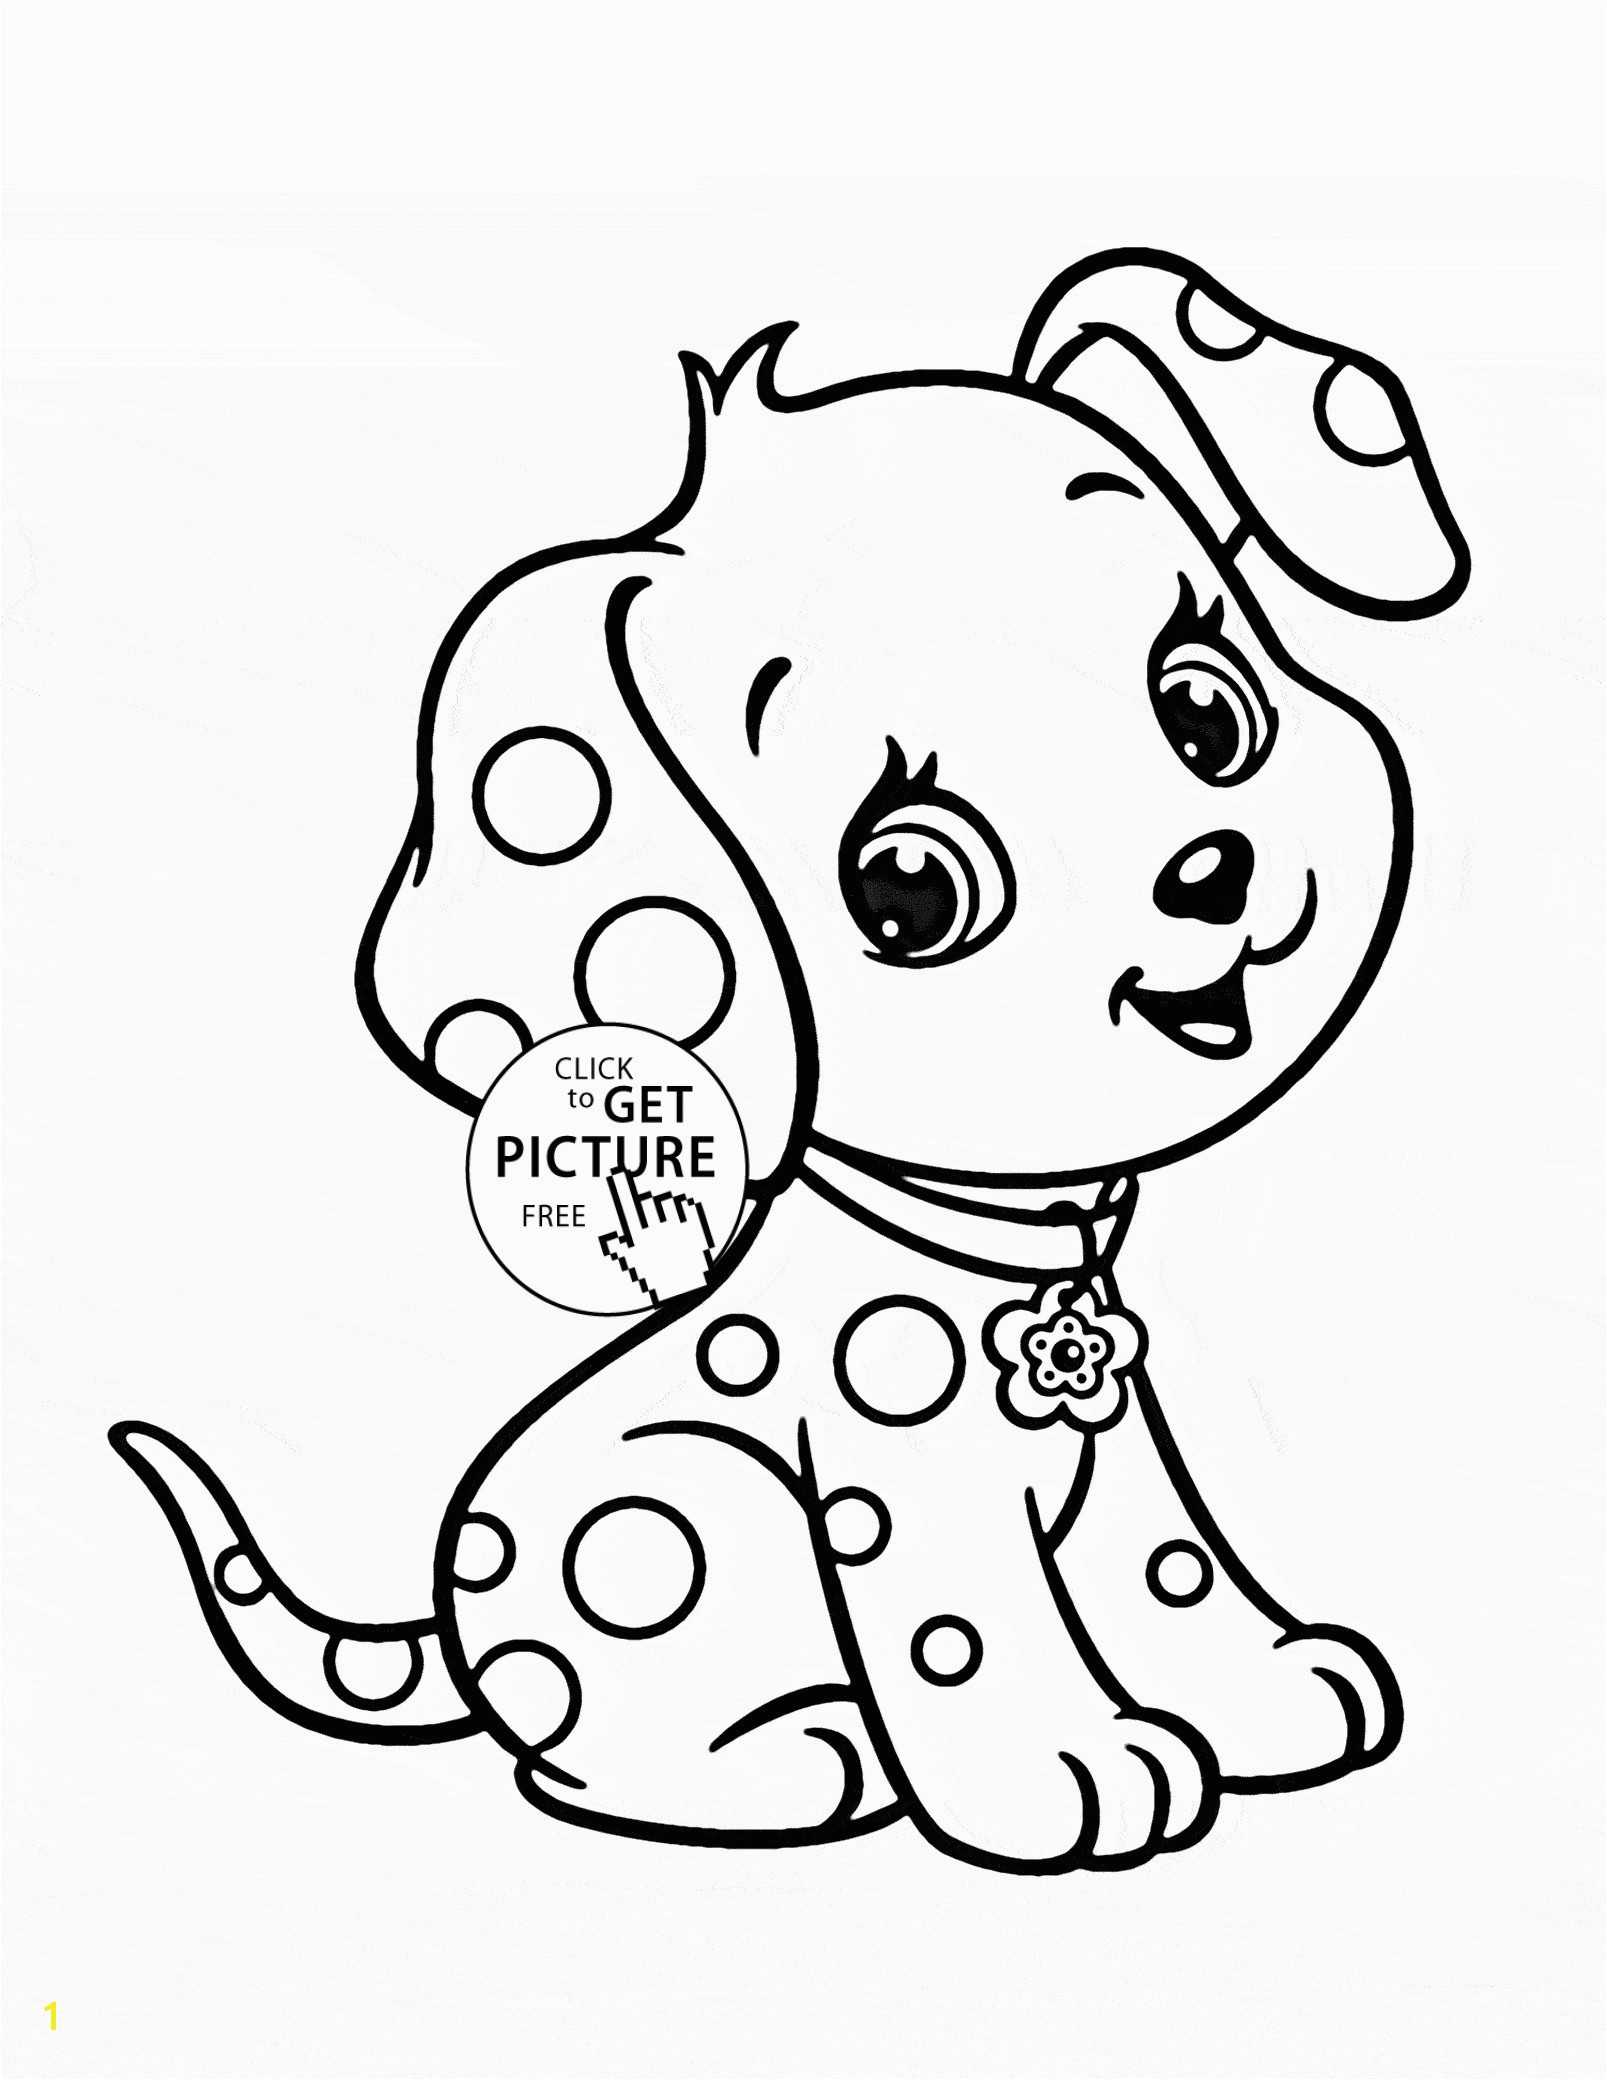 Cute Dog Coloring Pages Luxury Baby Animal Coloring Pages Beautiful Cartoon Puppy Coloring Page for